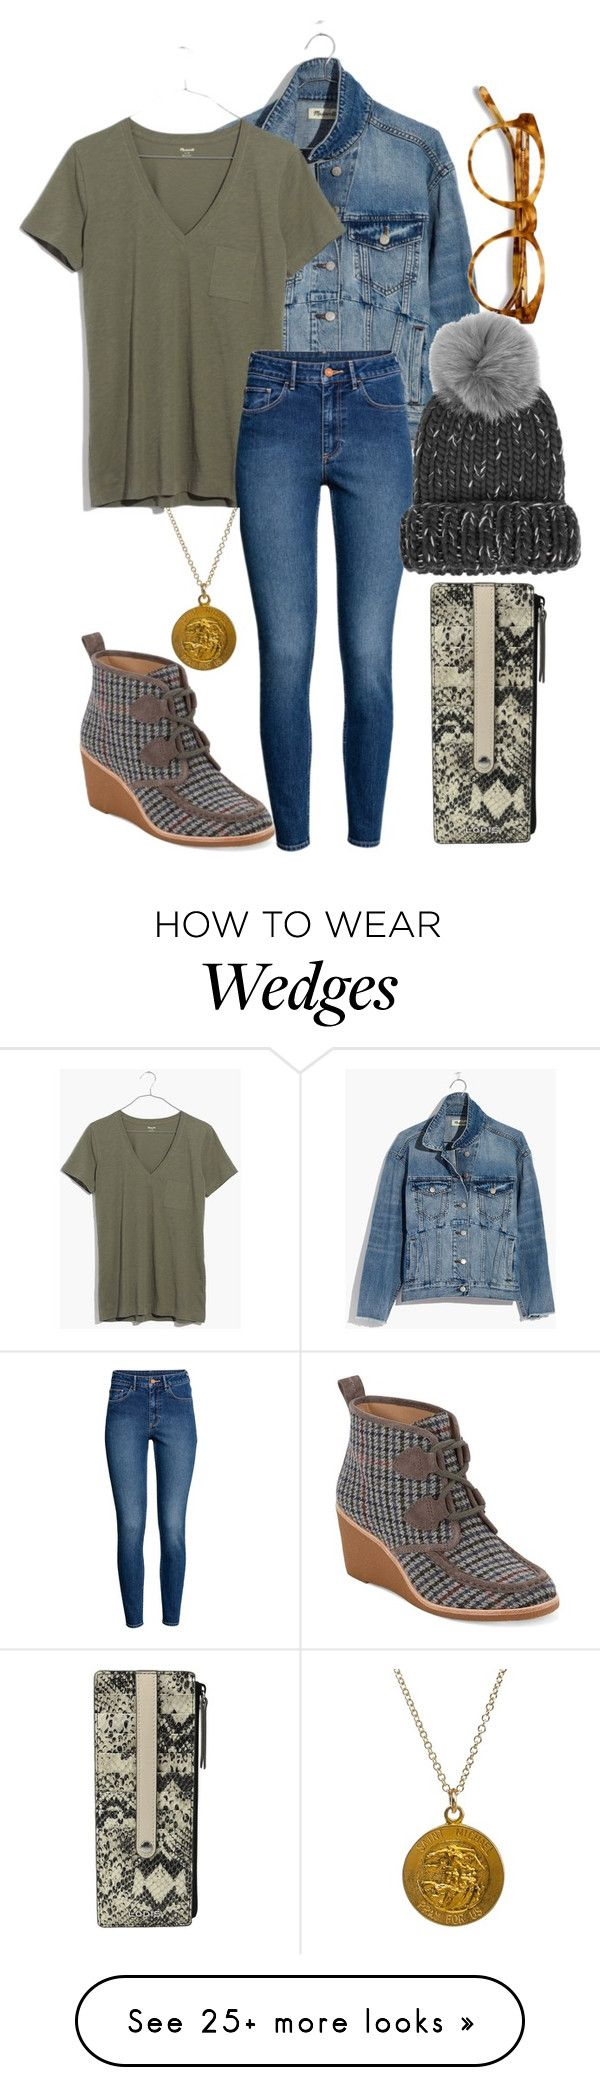 """""""What is this Feeling?"""" by berryco on Polyvore featuring Madewell, EyeBuyDirect.com, H&M, Eugenia Kim, Dogeared, G.H. Bass & Co., Lodis, witch, broadway and musical"""